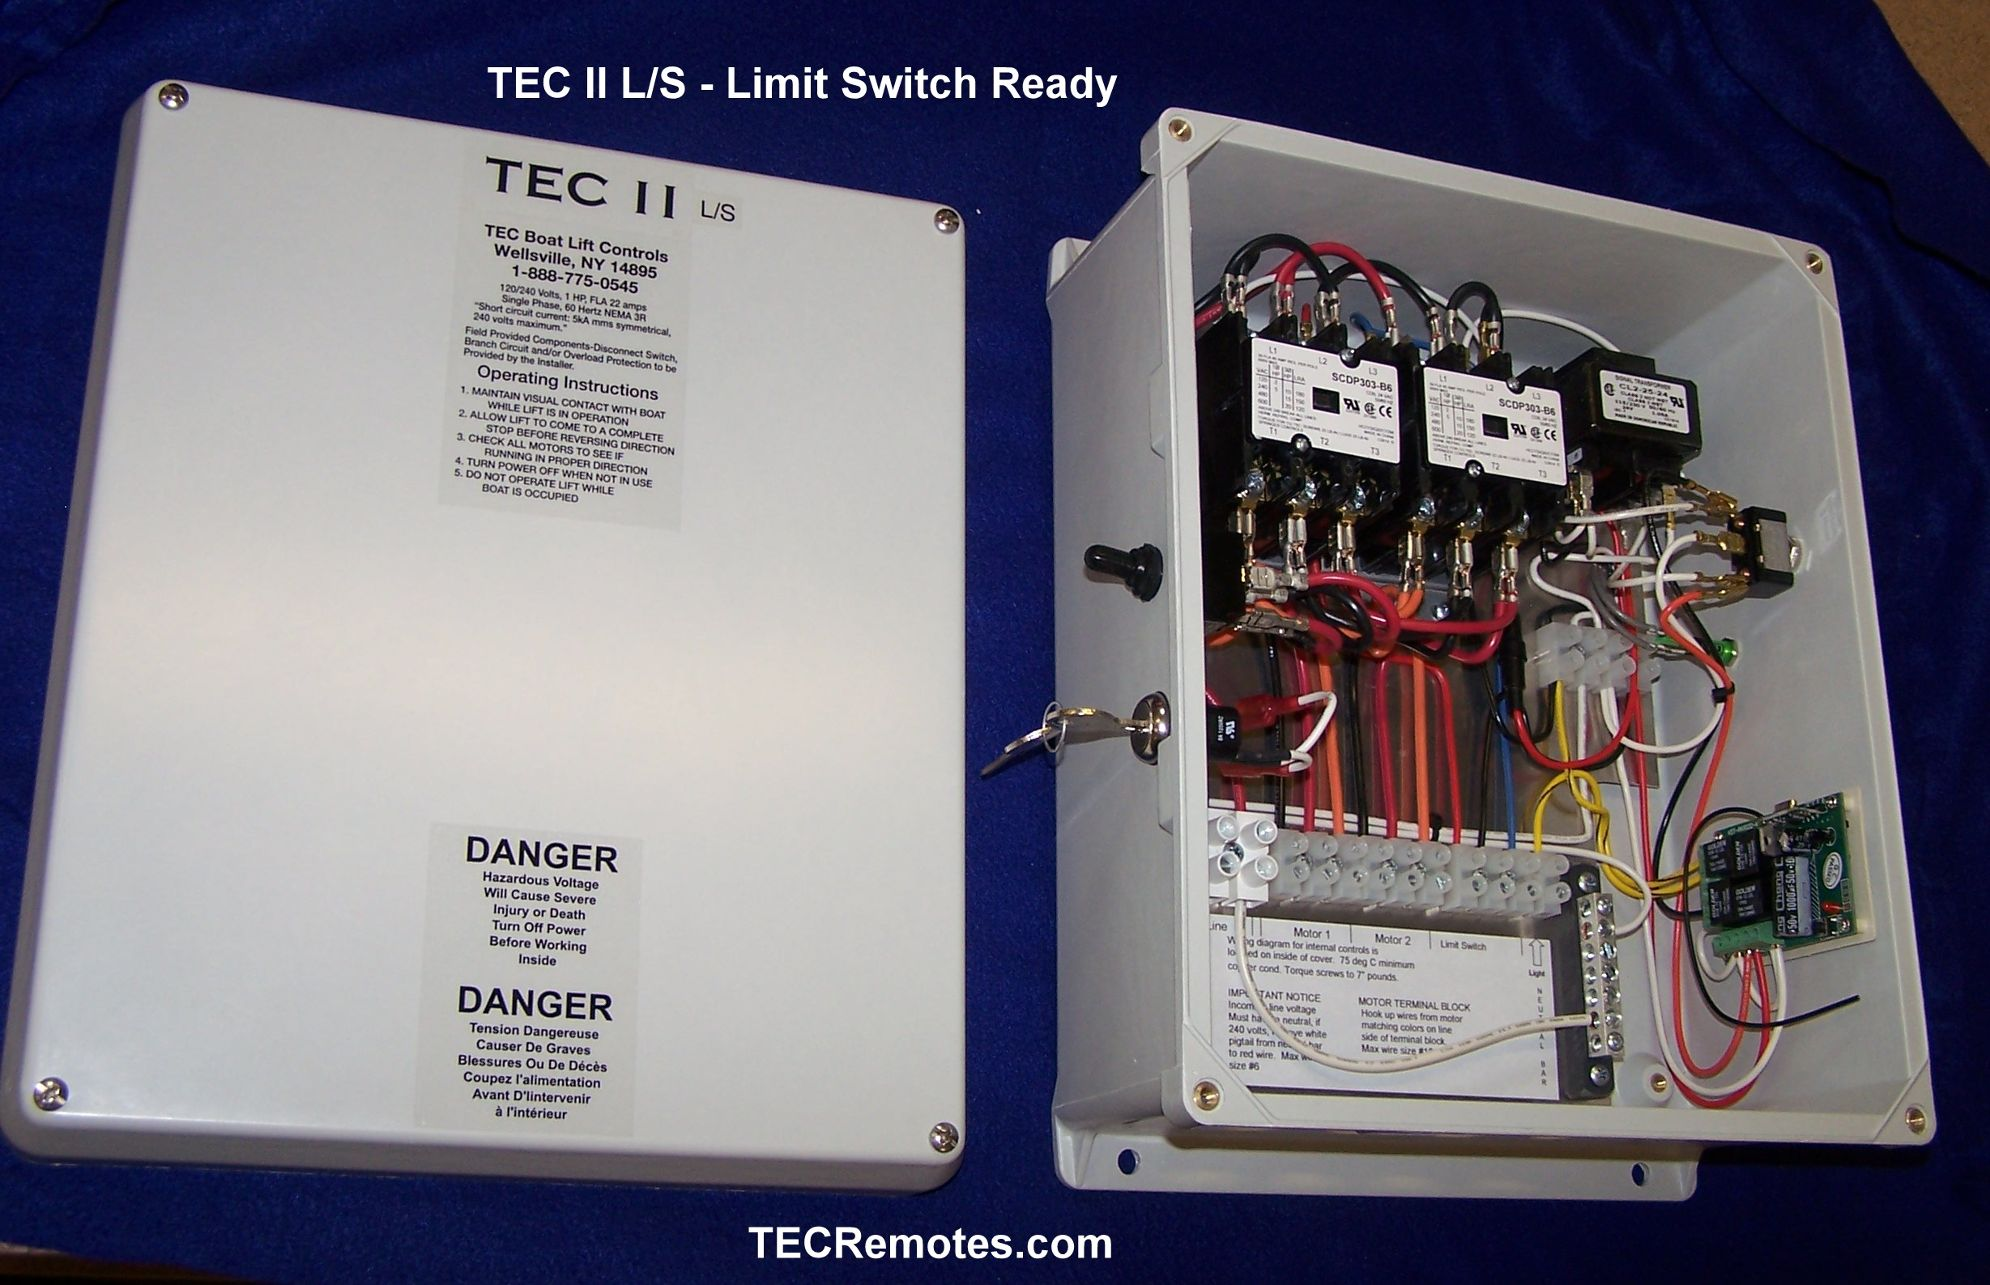 TEC II L/S - Limit Switch Ready Two Motor Remote